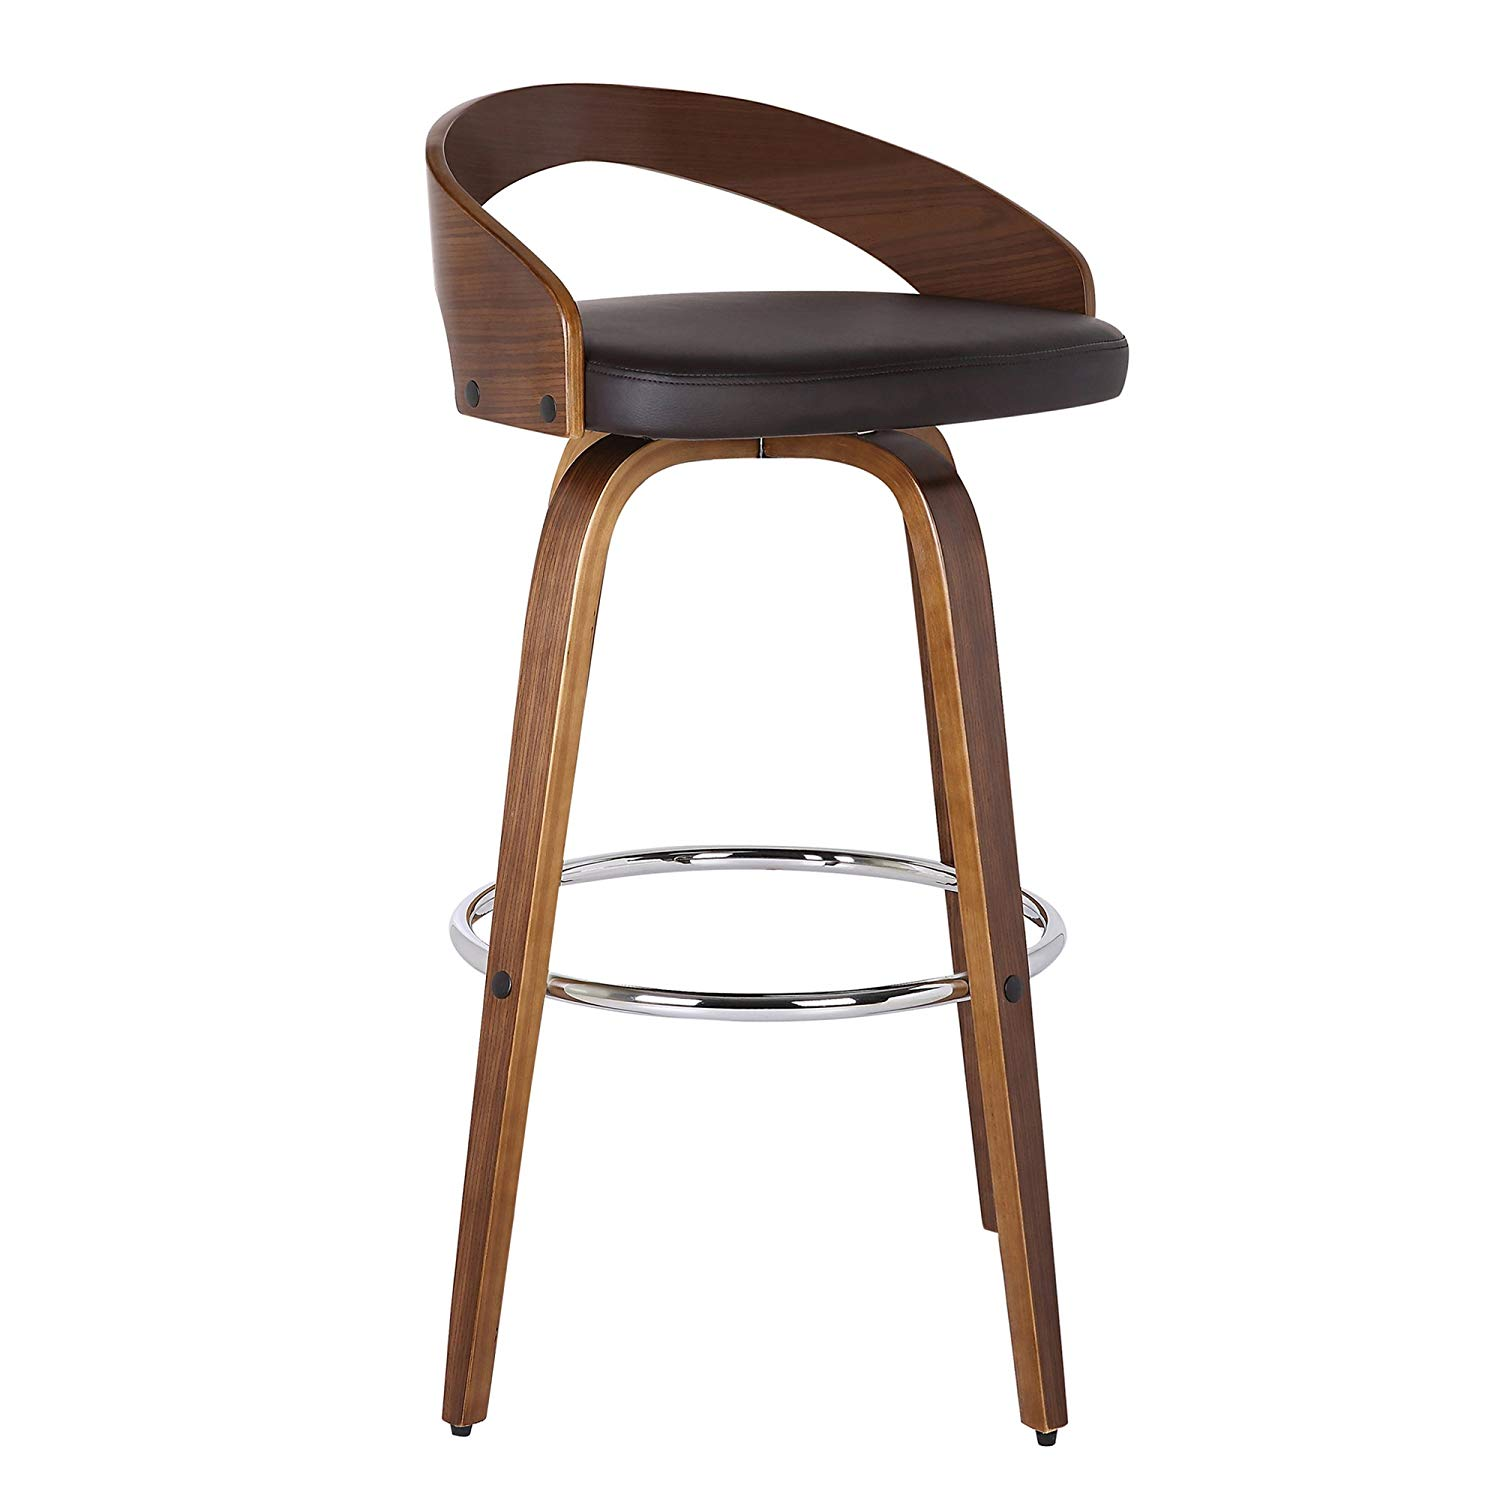 Armen Living LCSOBABRWA26 Barstool | low back bar stools